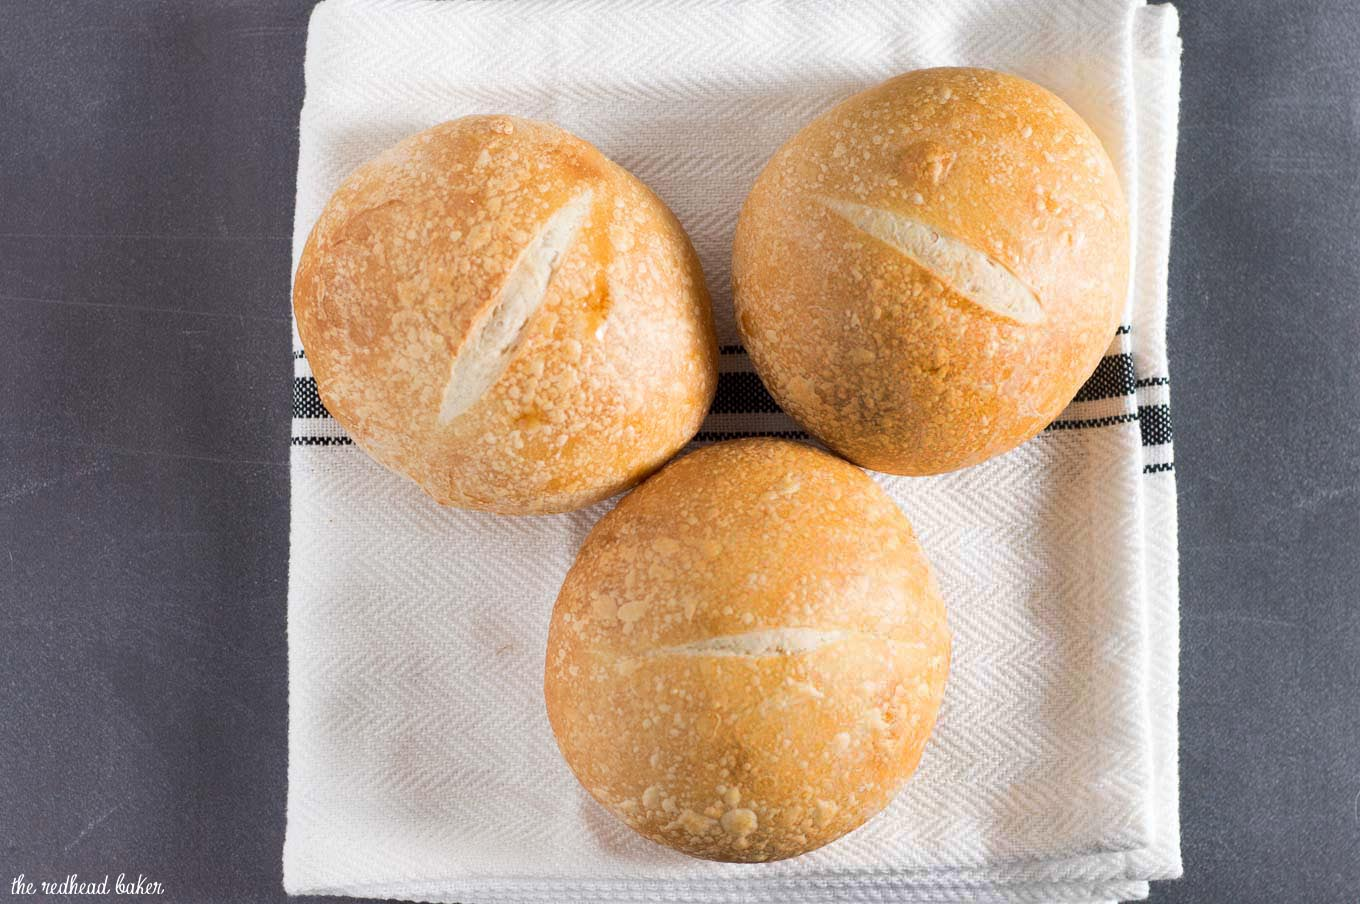 Crusty French rolls get their texture from a long rise in the refrigerator. Make them small to serve with dinner, or larger to hold a sandwich or burger.